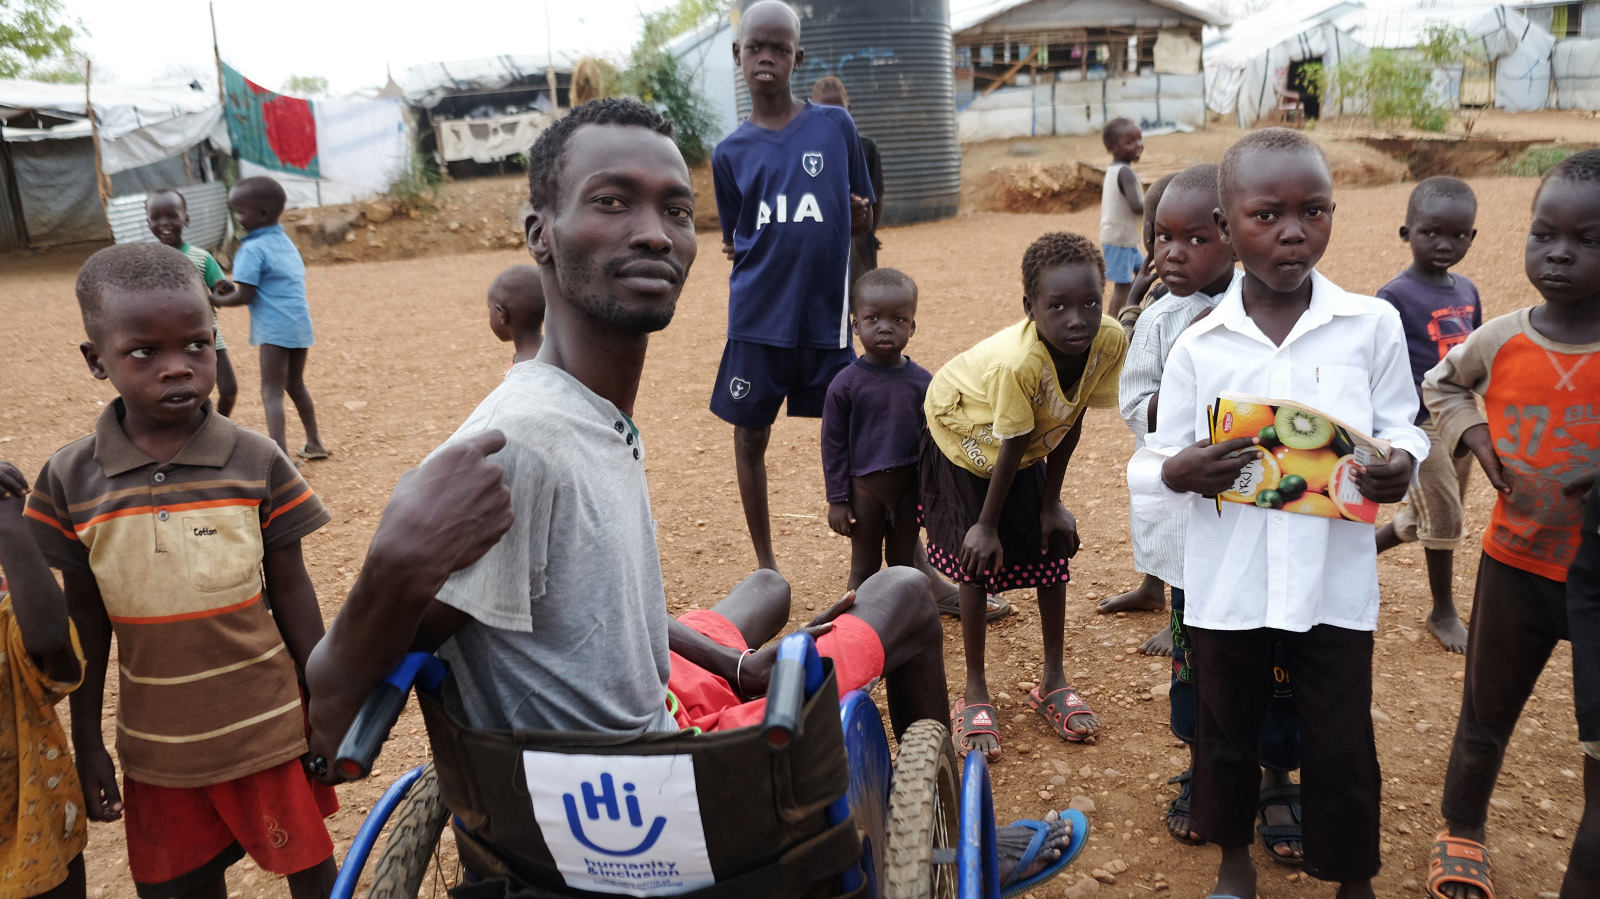 Beneficiary who received a wheelchair in a camp for displaced people near Juba, South Sudan